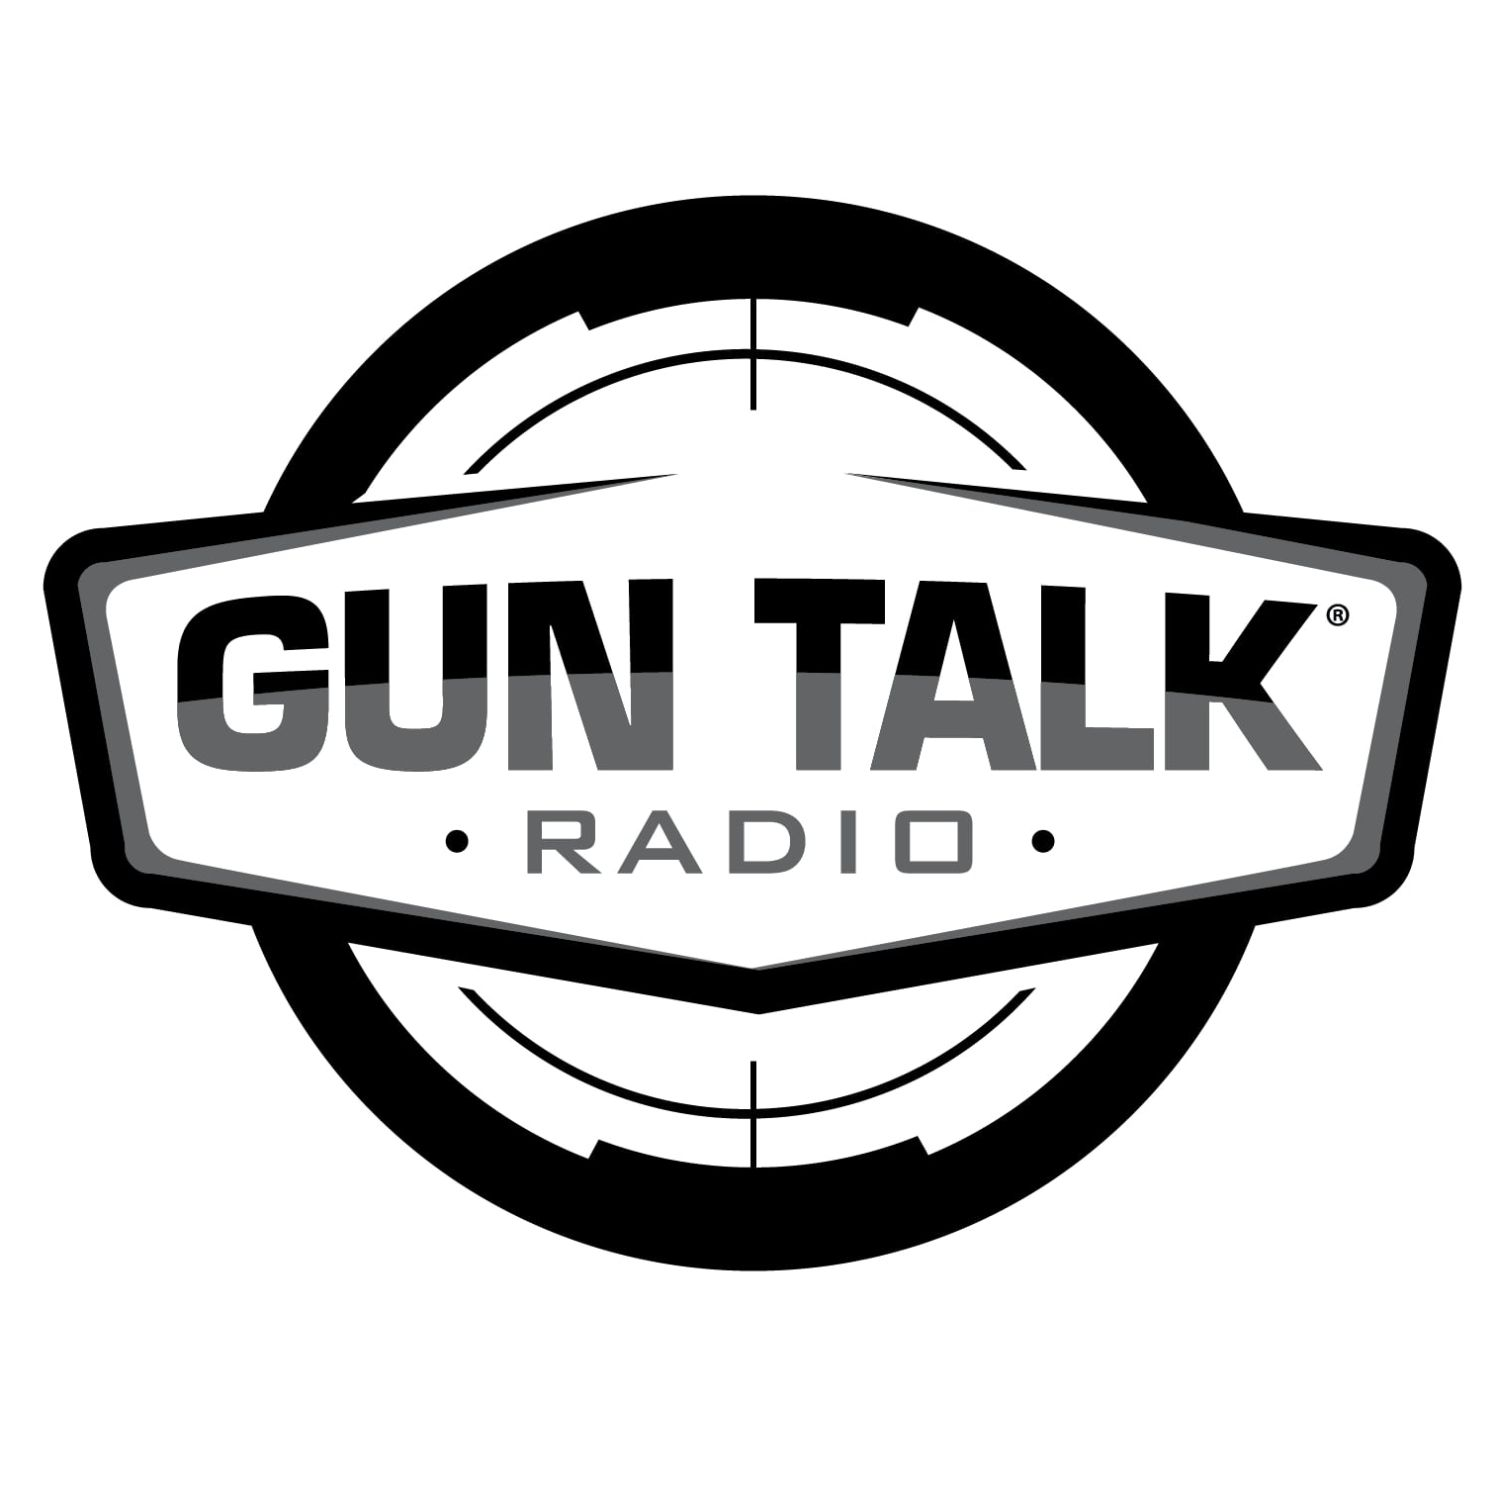 Artwork for Guntalk 2009-06-21 Part B